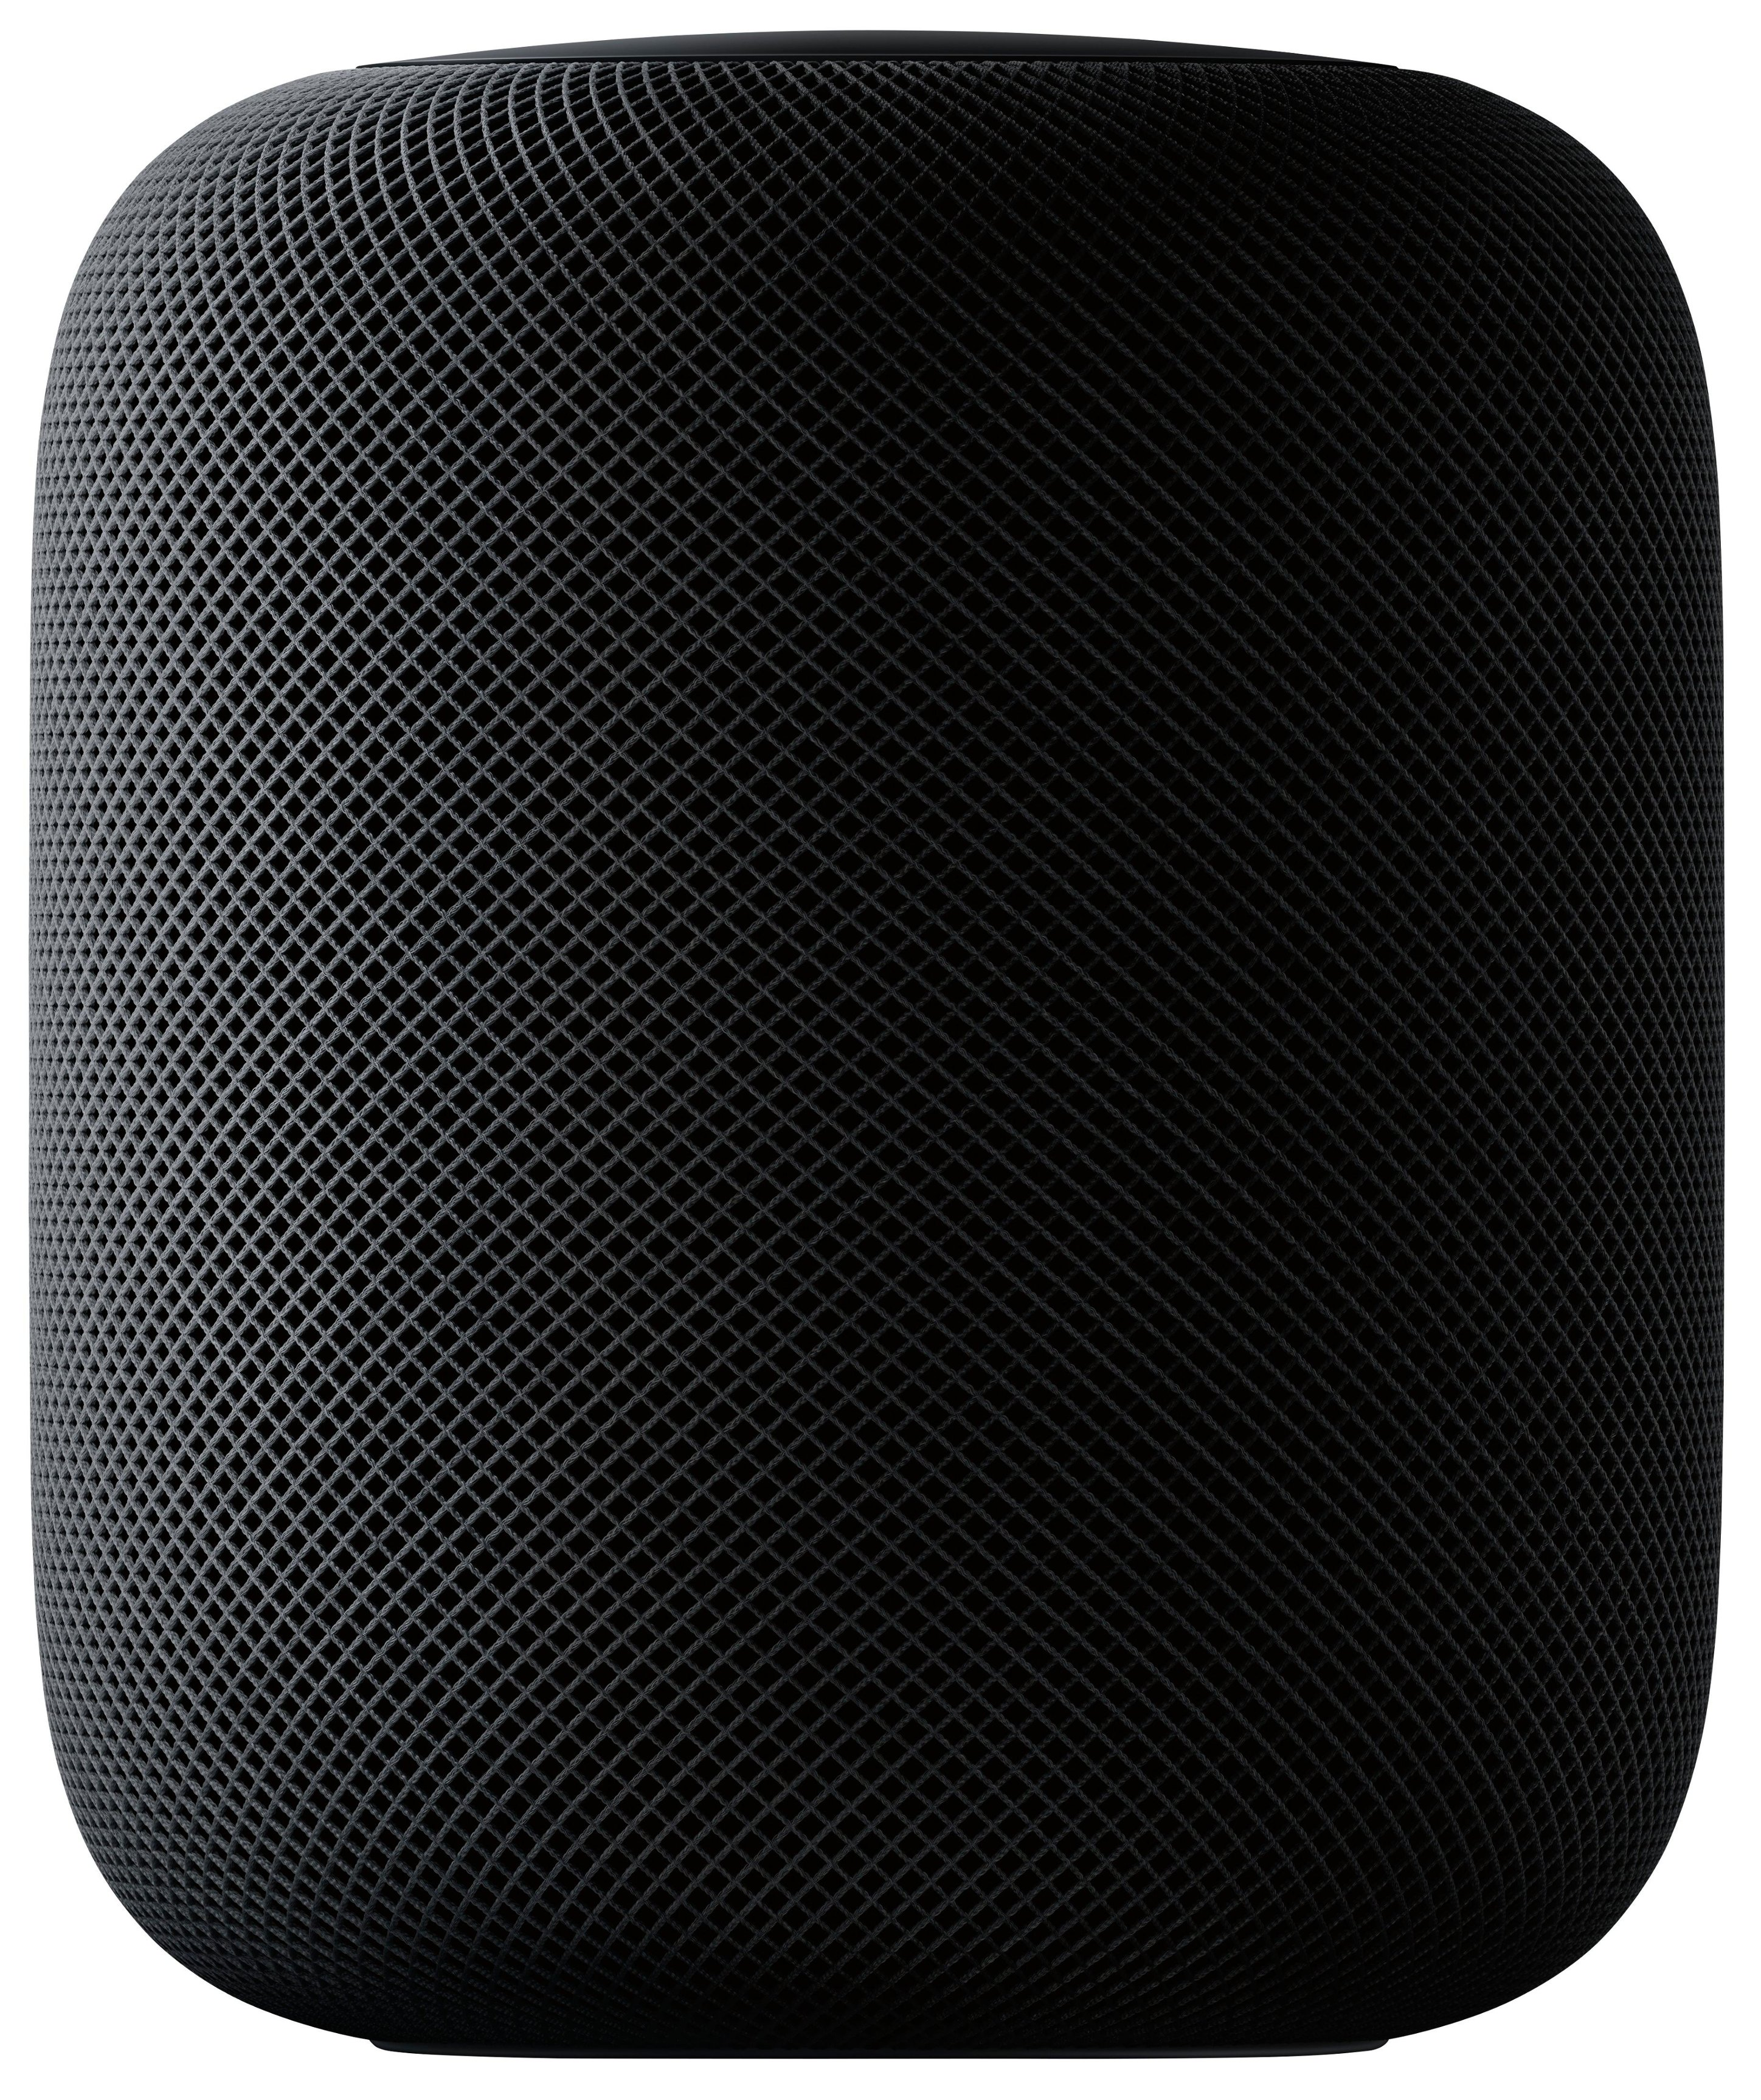 Apple HomePod Space Gray [MQHW2LL]